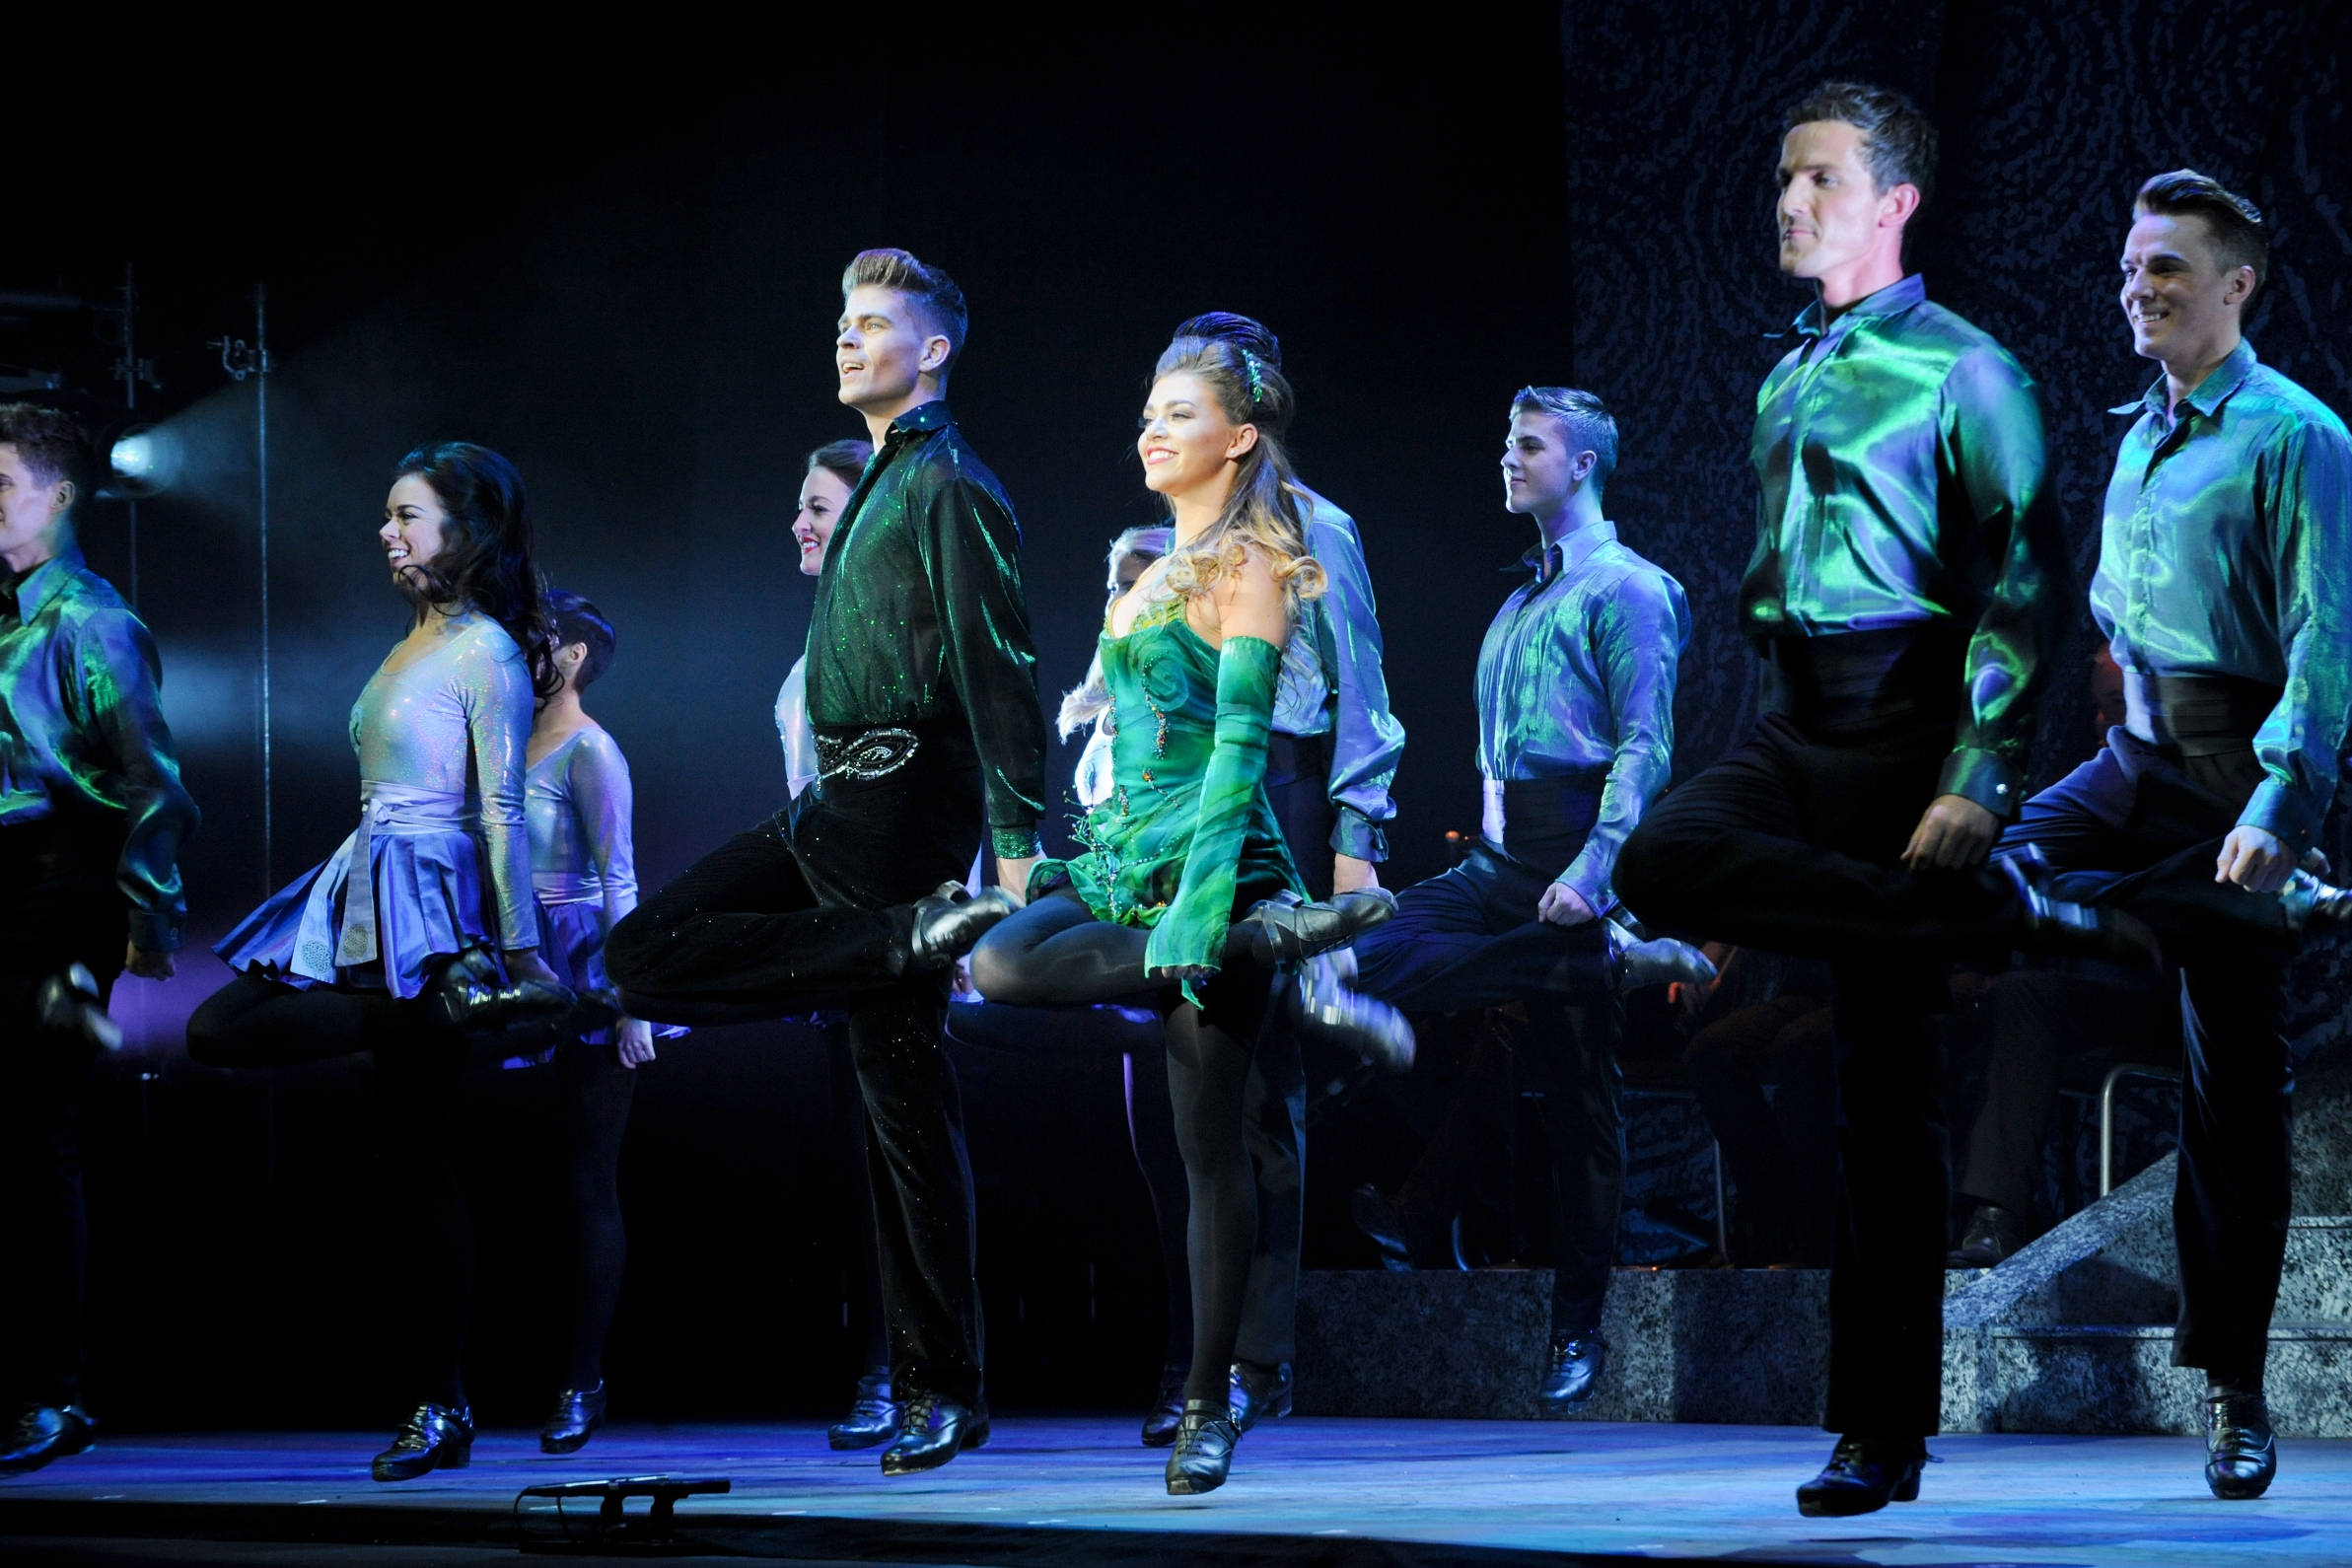 'Riverdance' performers Photo Provided